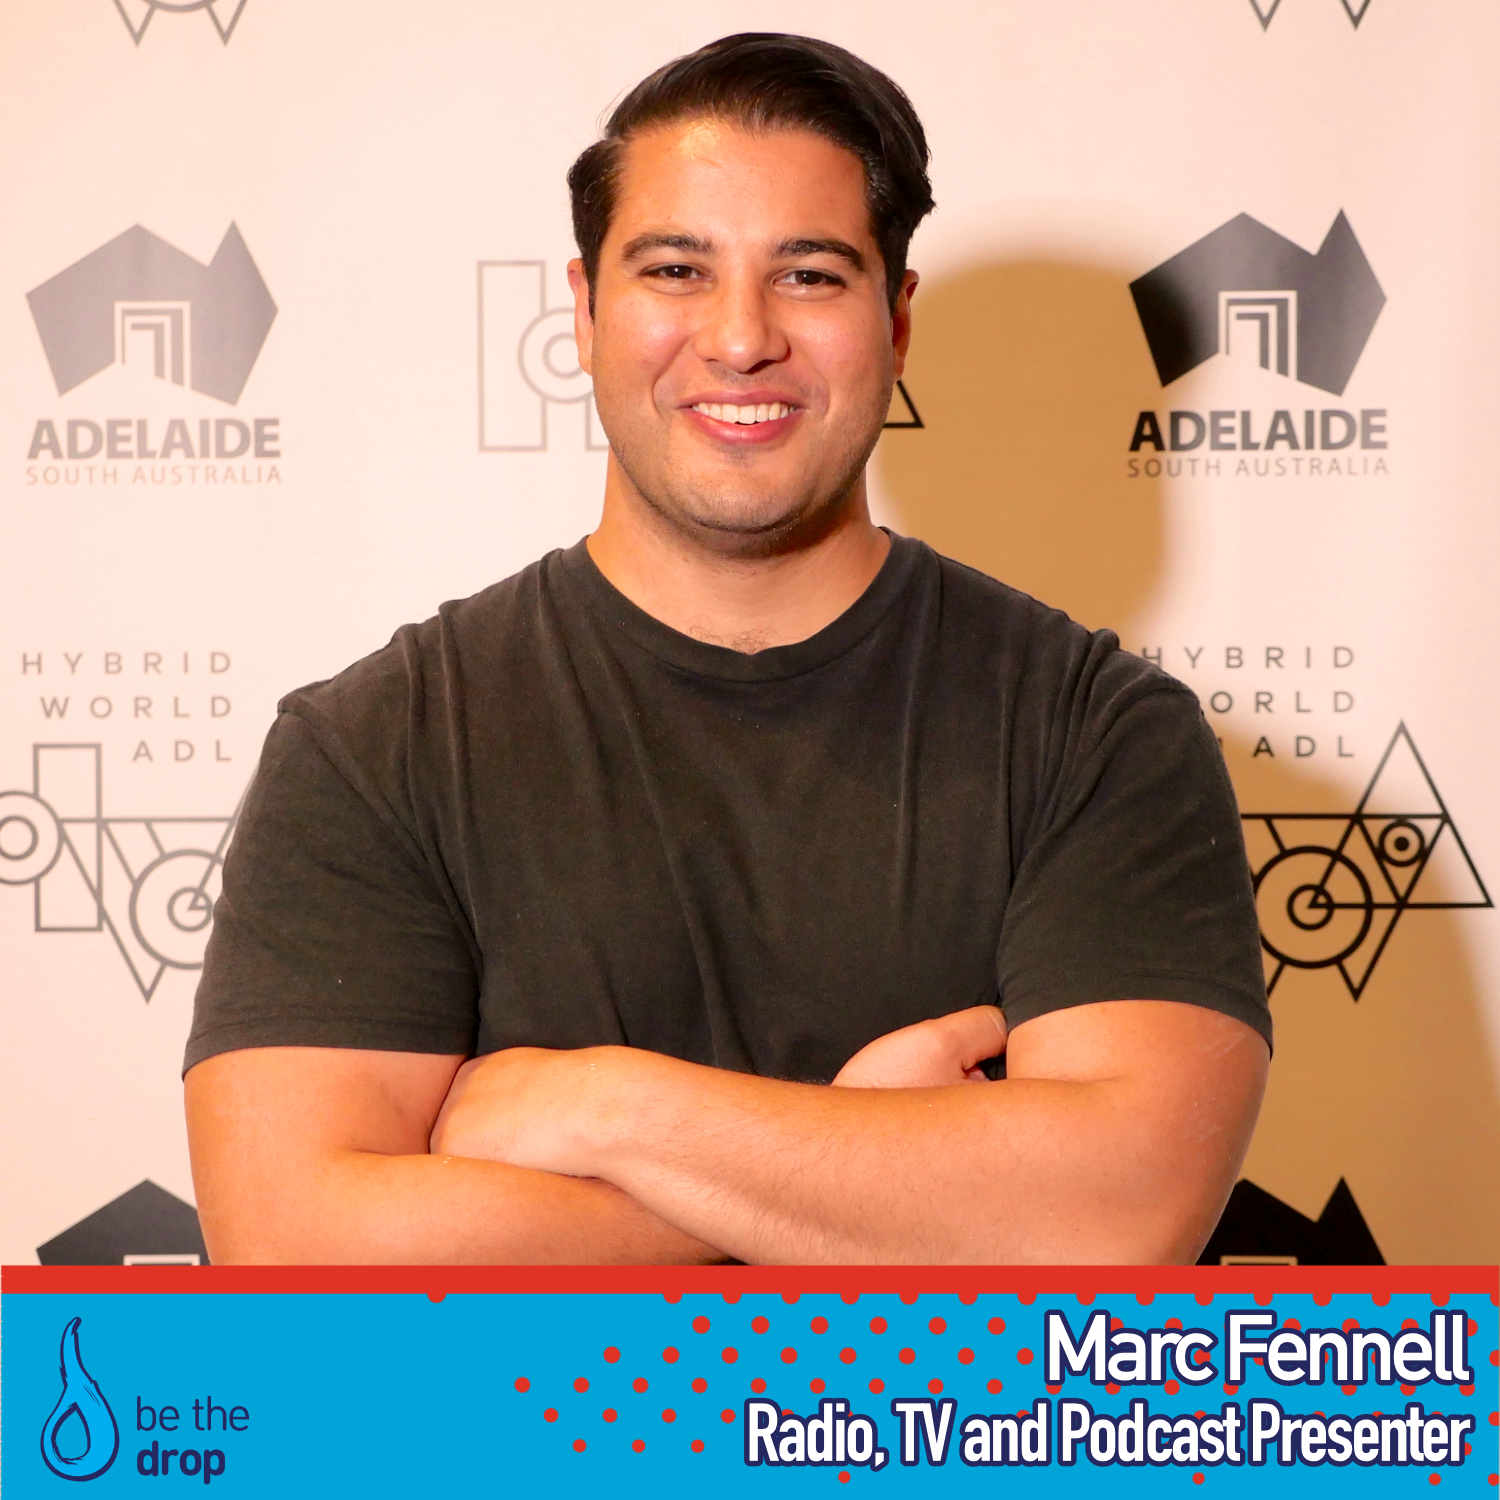 Interview Techniques For Storytelling With Marc Fennell [Podcast]